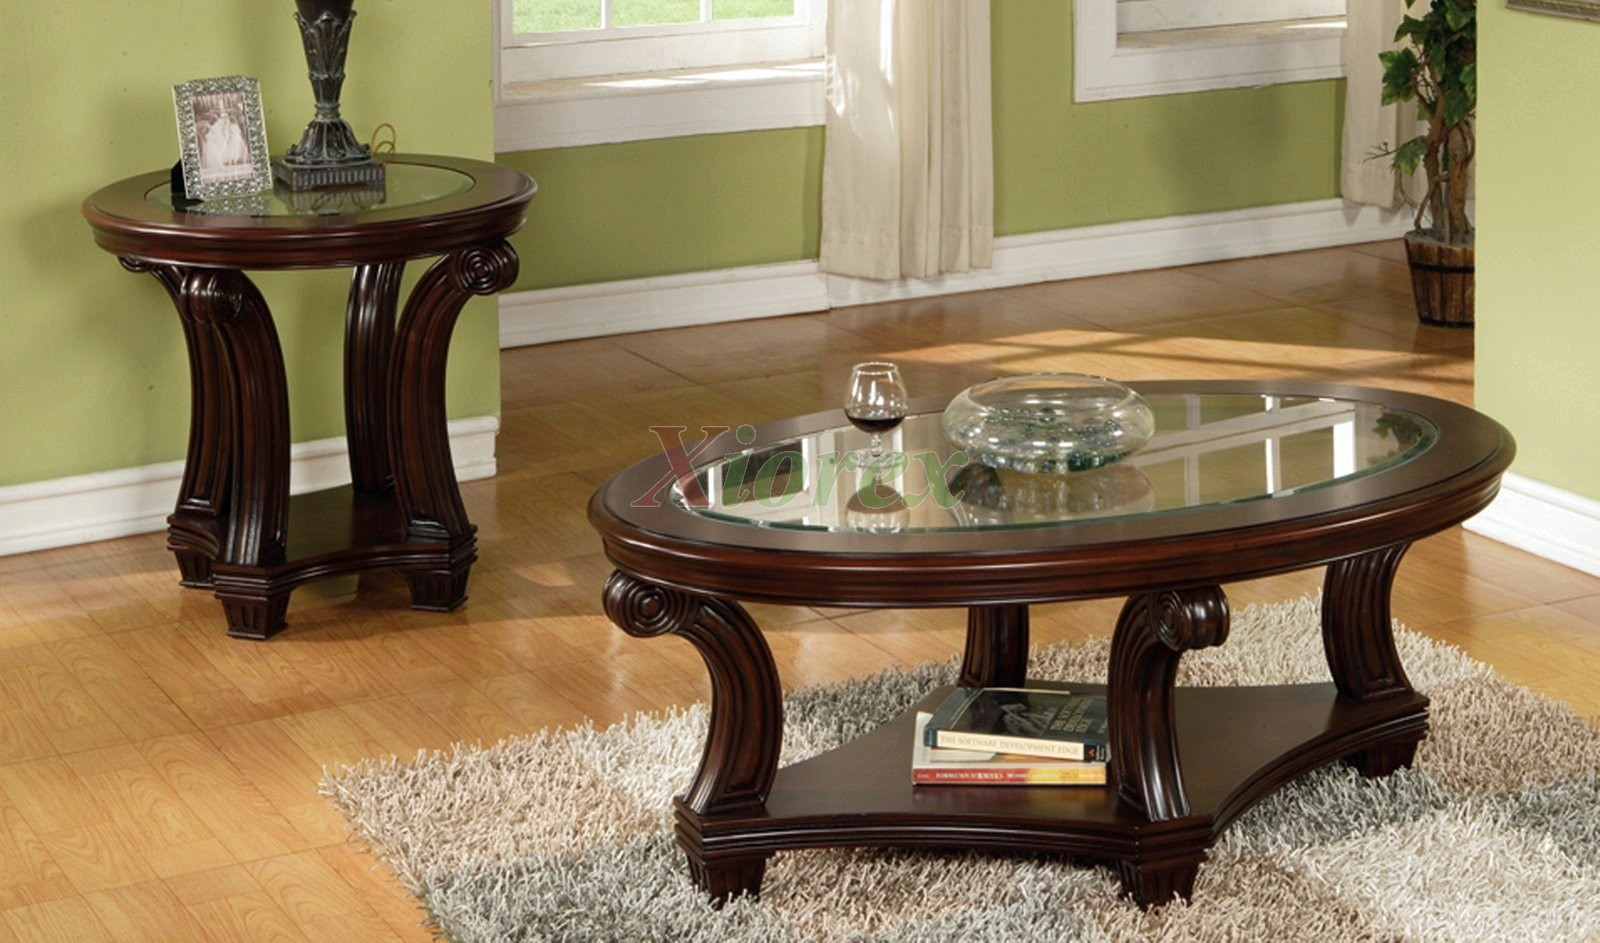 Modern-End-Tables-and-Coffee-Tables-Tables-Perseus-Glass-Top-Wooden-Modern-minimalist-industrial-style-rustic-wood-furniture (Image 7 of 10)